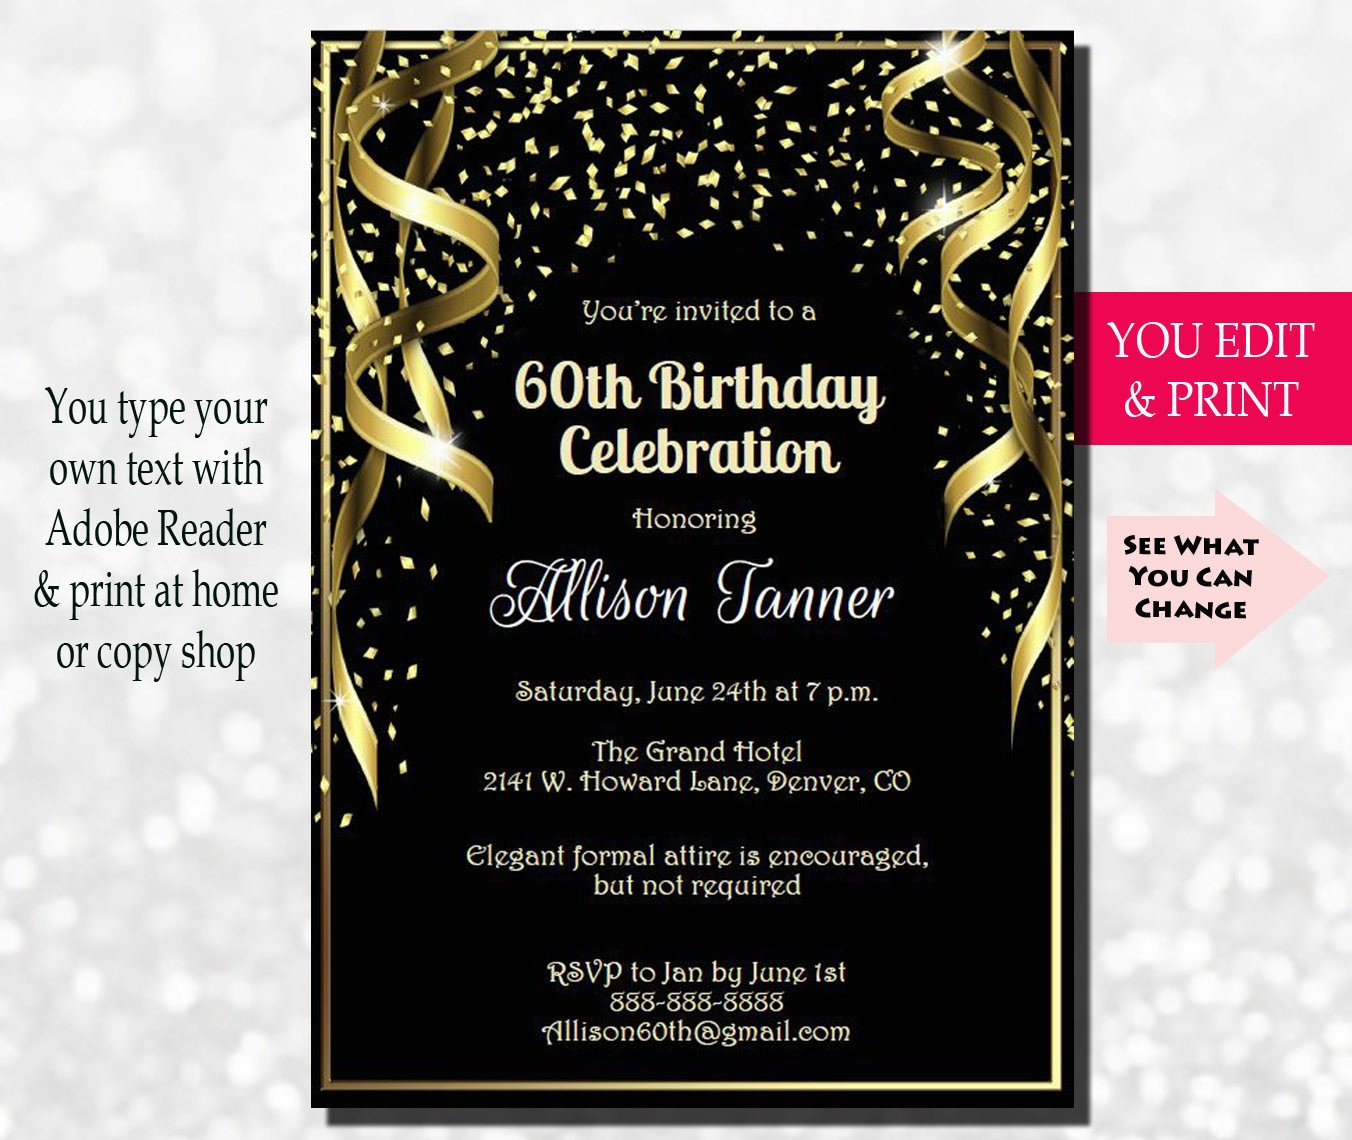 60th Birthday Invitation Template 60th Birthday Invitation 60th Birthday Party Invitation 60th